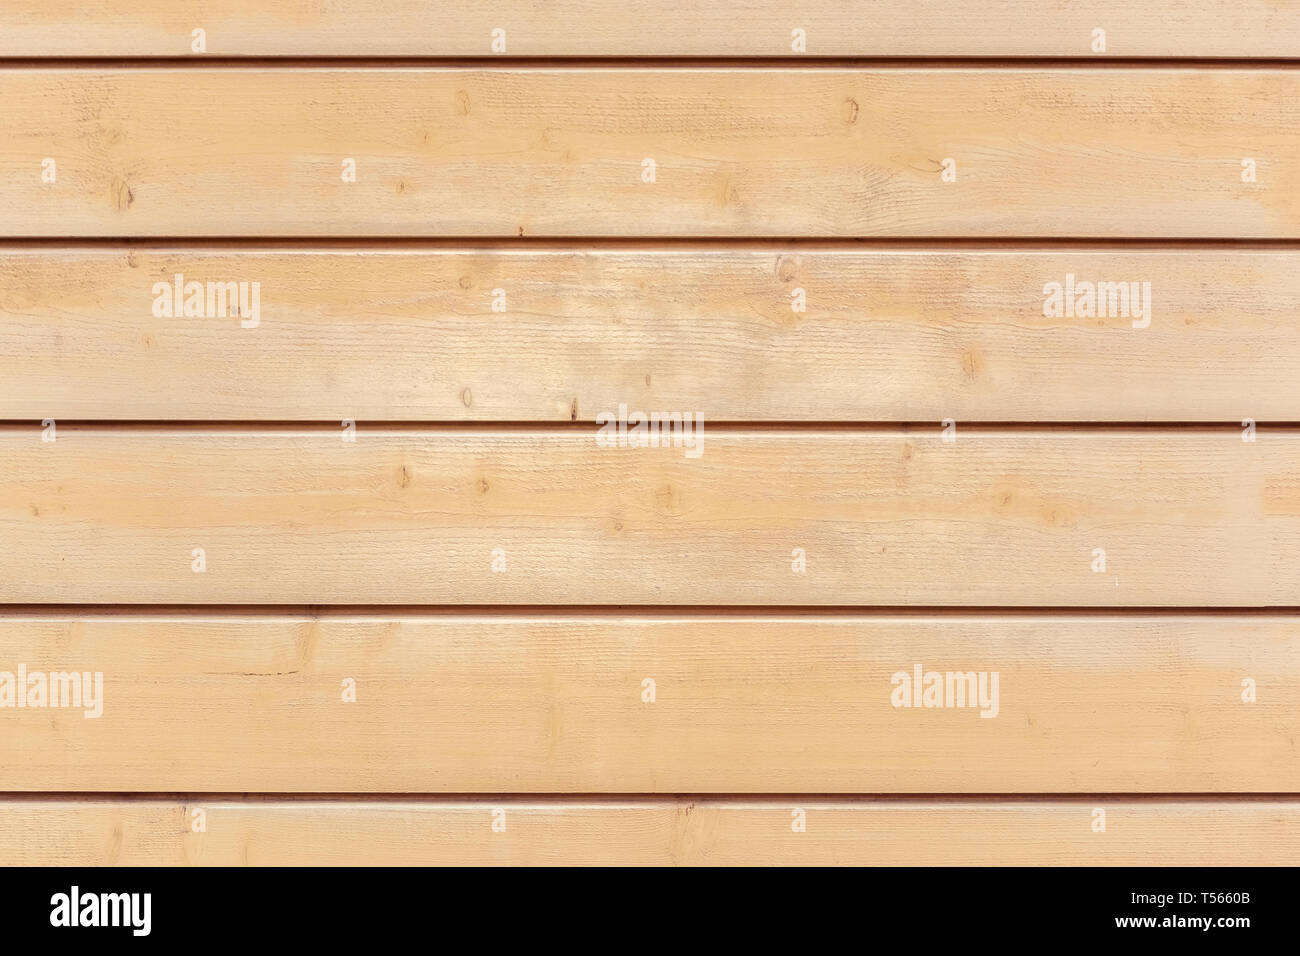 Fragment of a wall of wooden pine planks for use as a background. - Stock Image